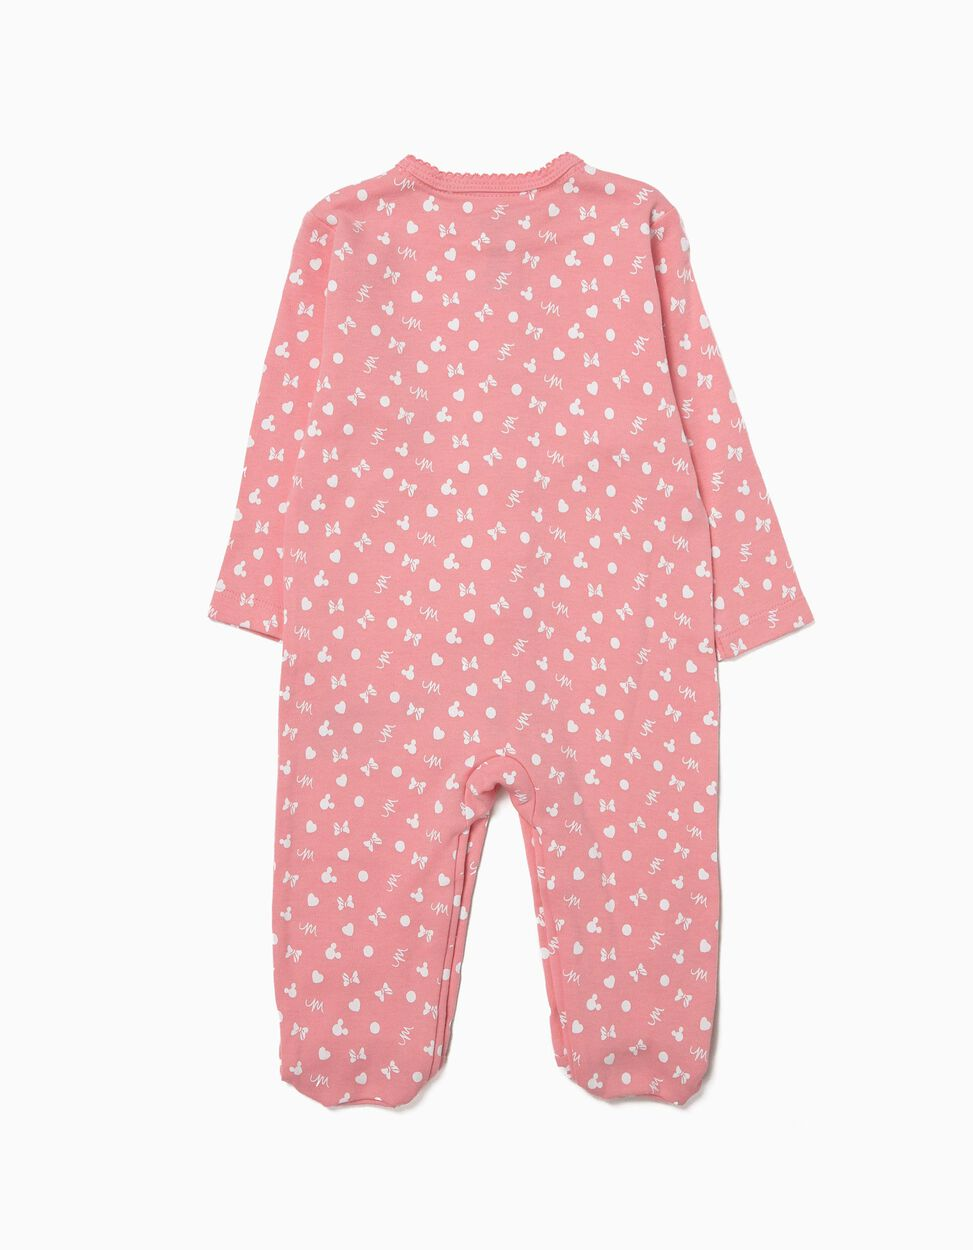 Pack 2 Babygrows Manga Comprida Minnie